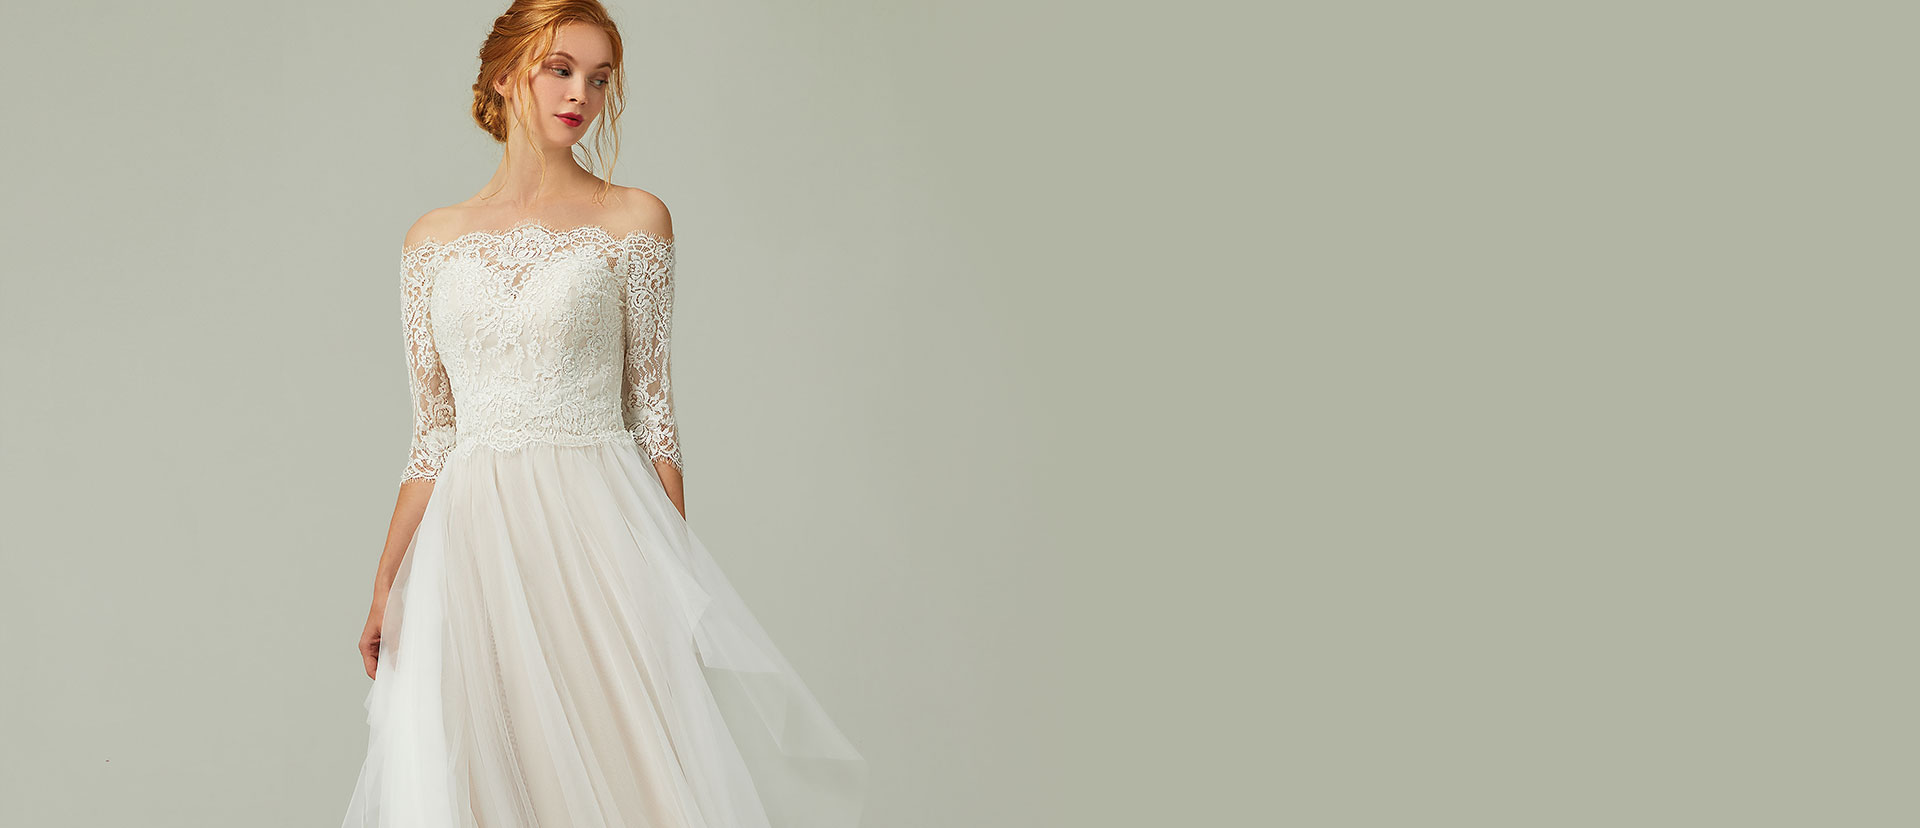 Cocomelody® | Wedding Dresses, Bridesmaid Dresses & More